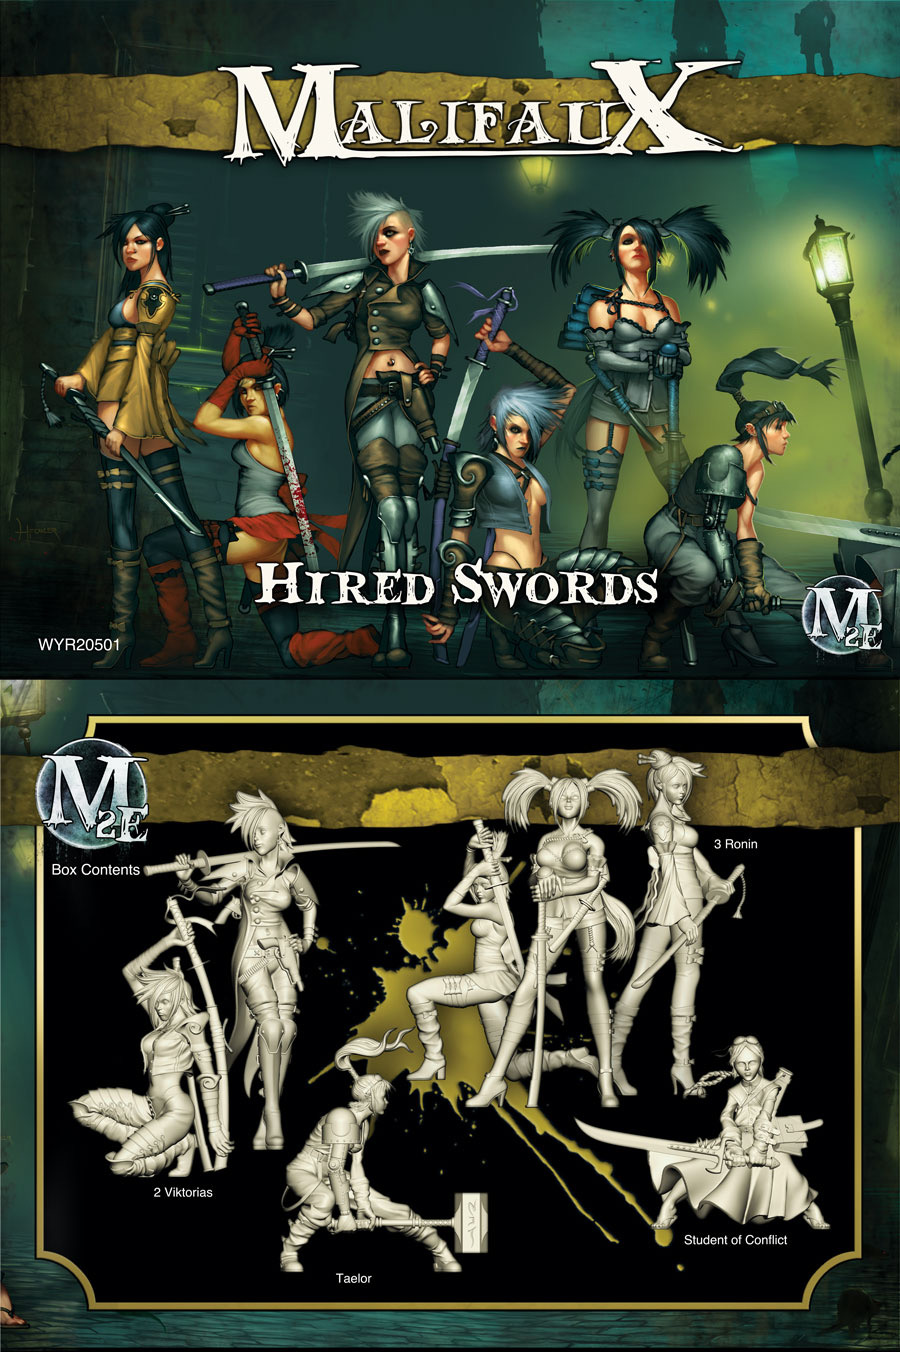 Hired Swords (The Viktorias)